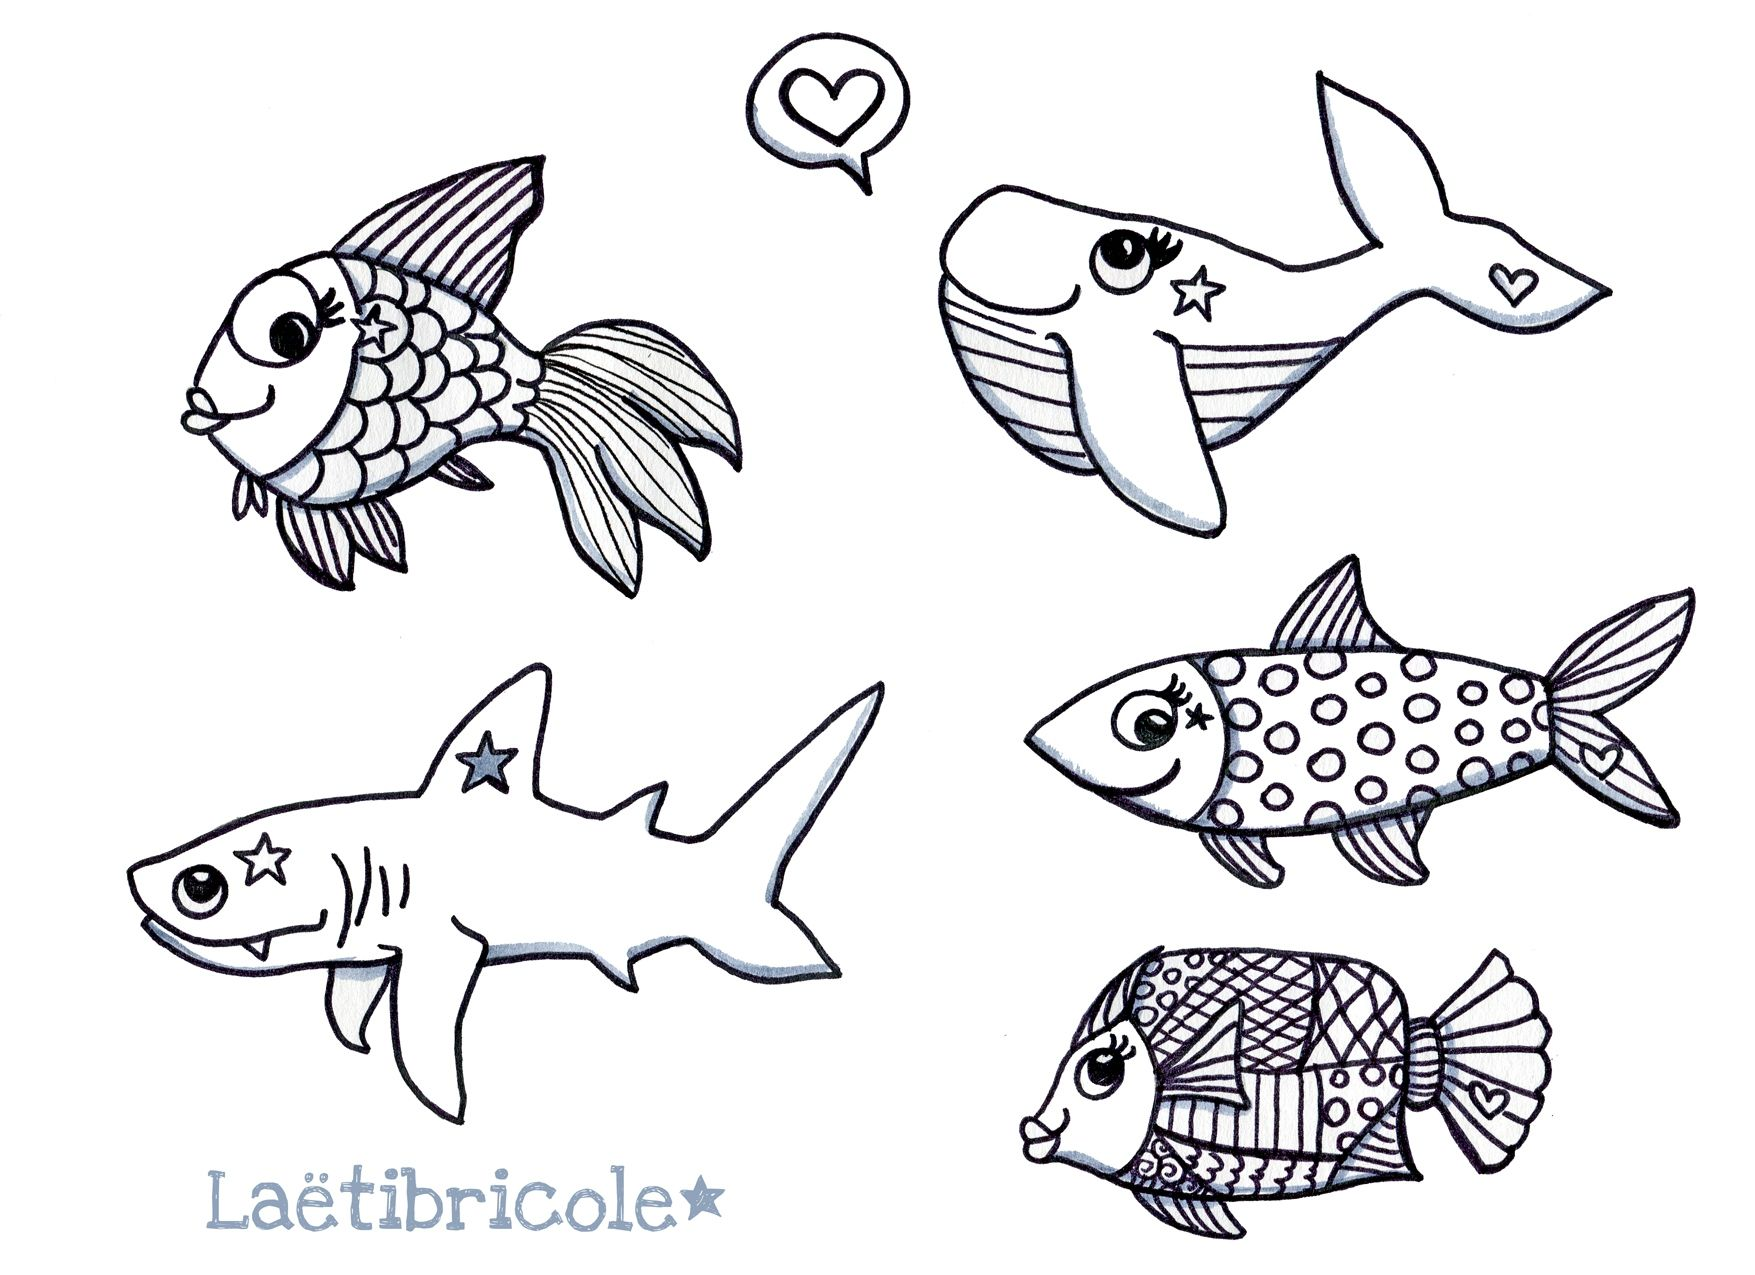 Coloriage poisson d avril my blog - Dessin poisson d avril rigolo ...